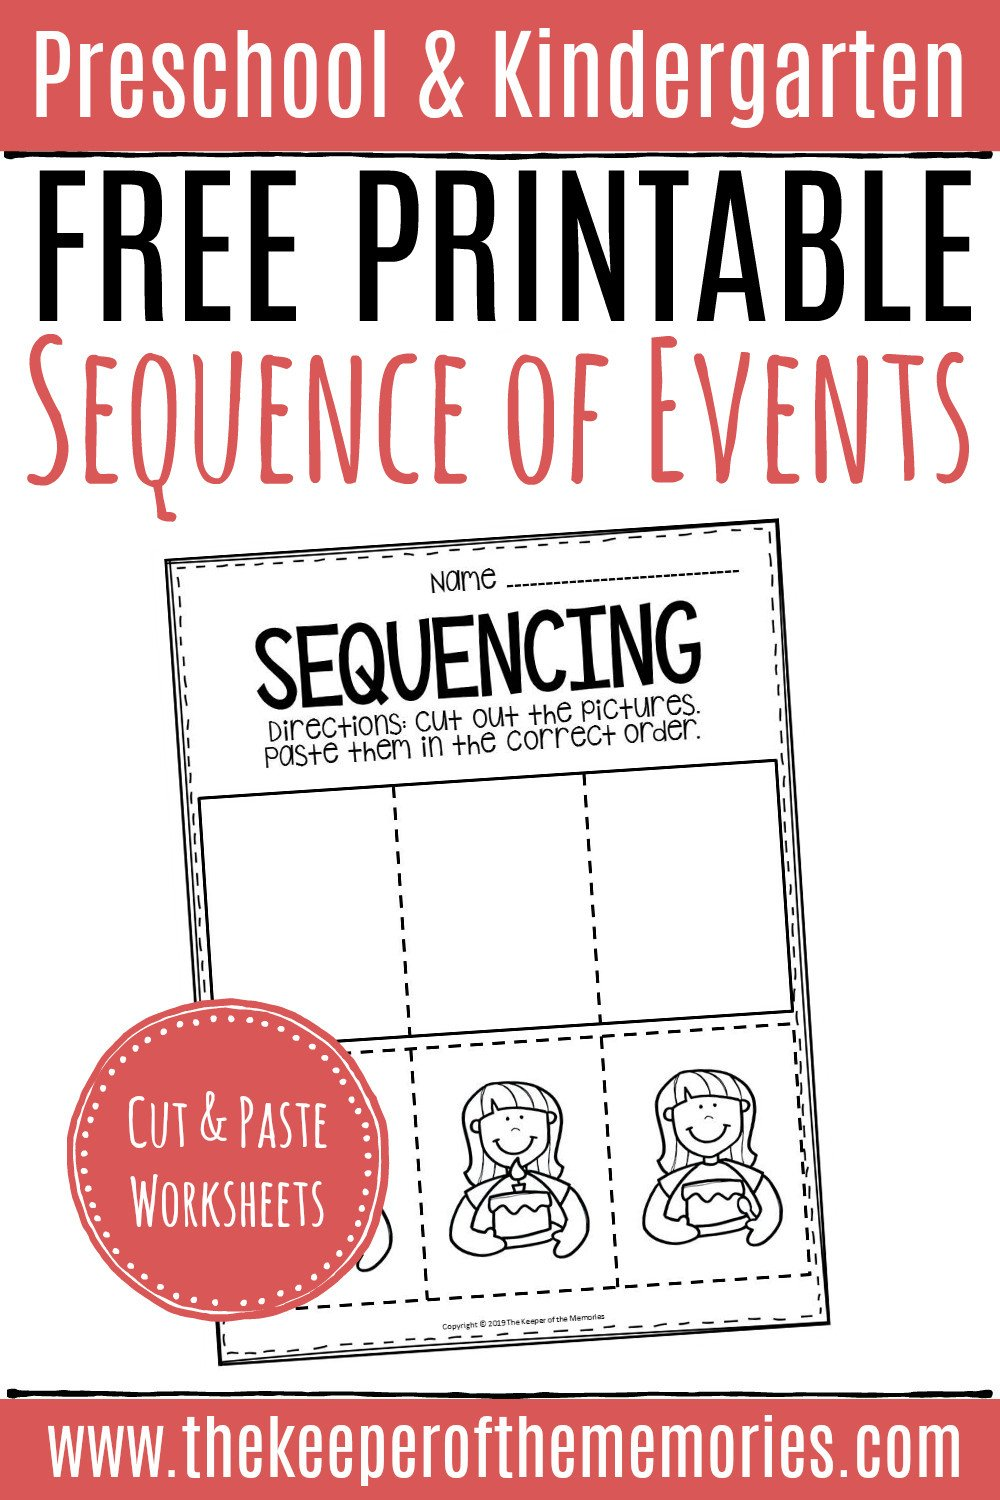 Sequencing Worksheets Middle School Impossible Math Question Fun Math Worksheets for 5th Grade